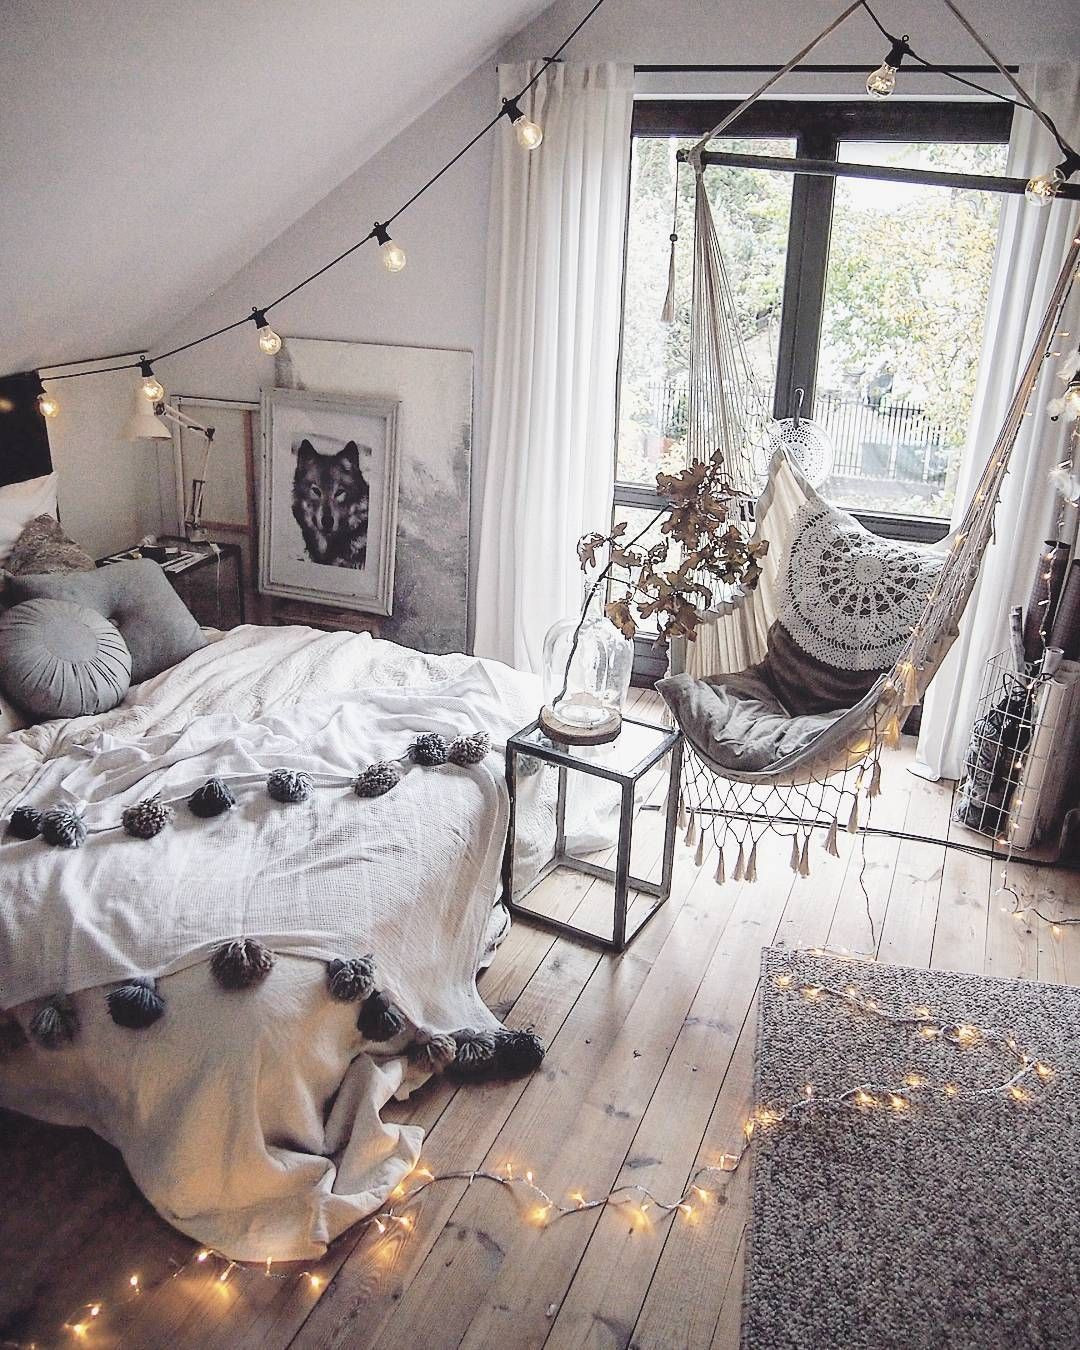 Infissi scuri more dream home pinterest bedrooms room and